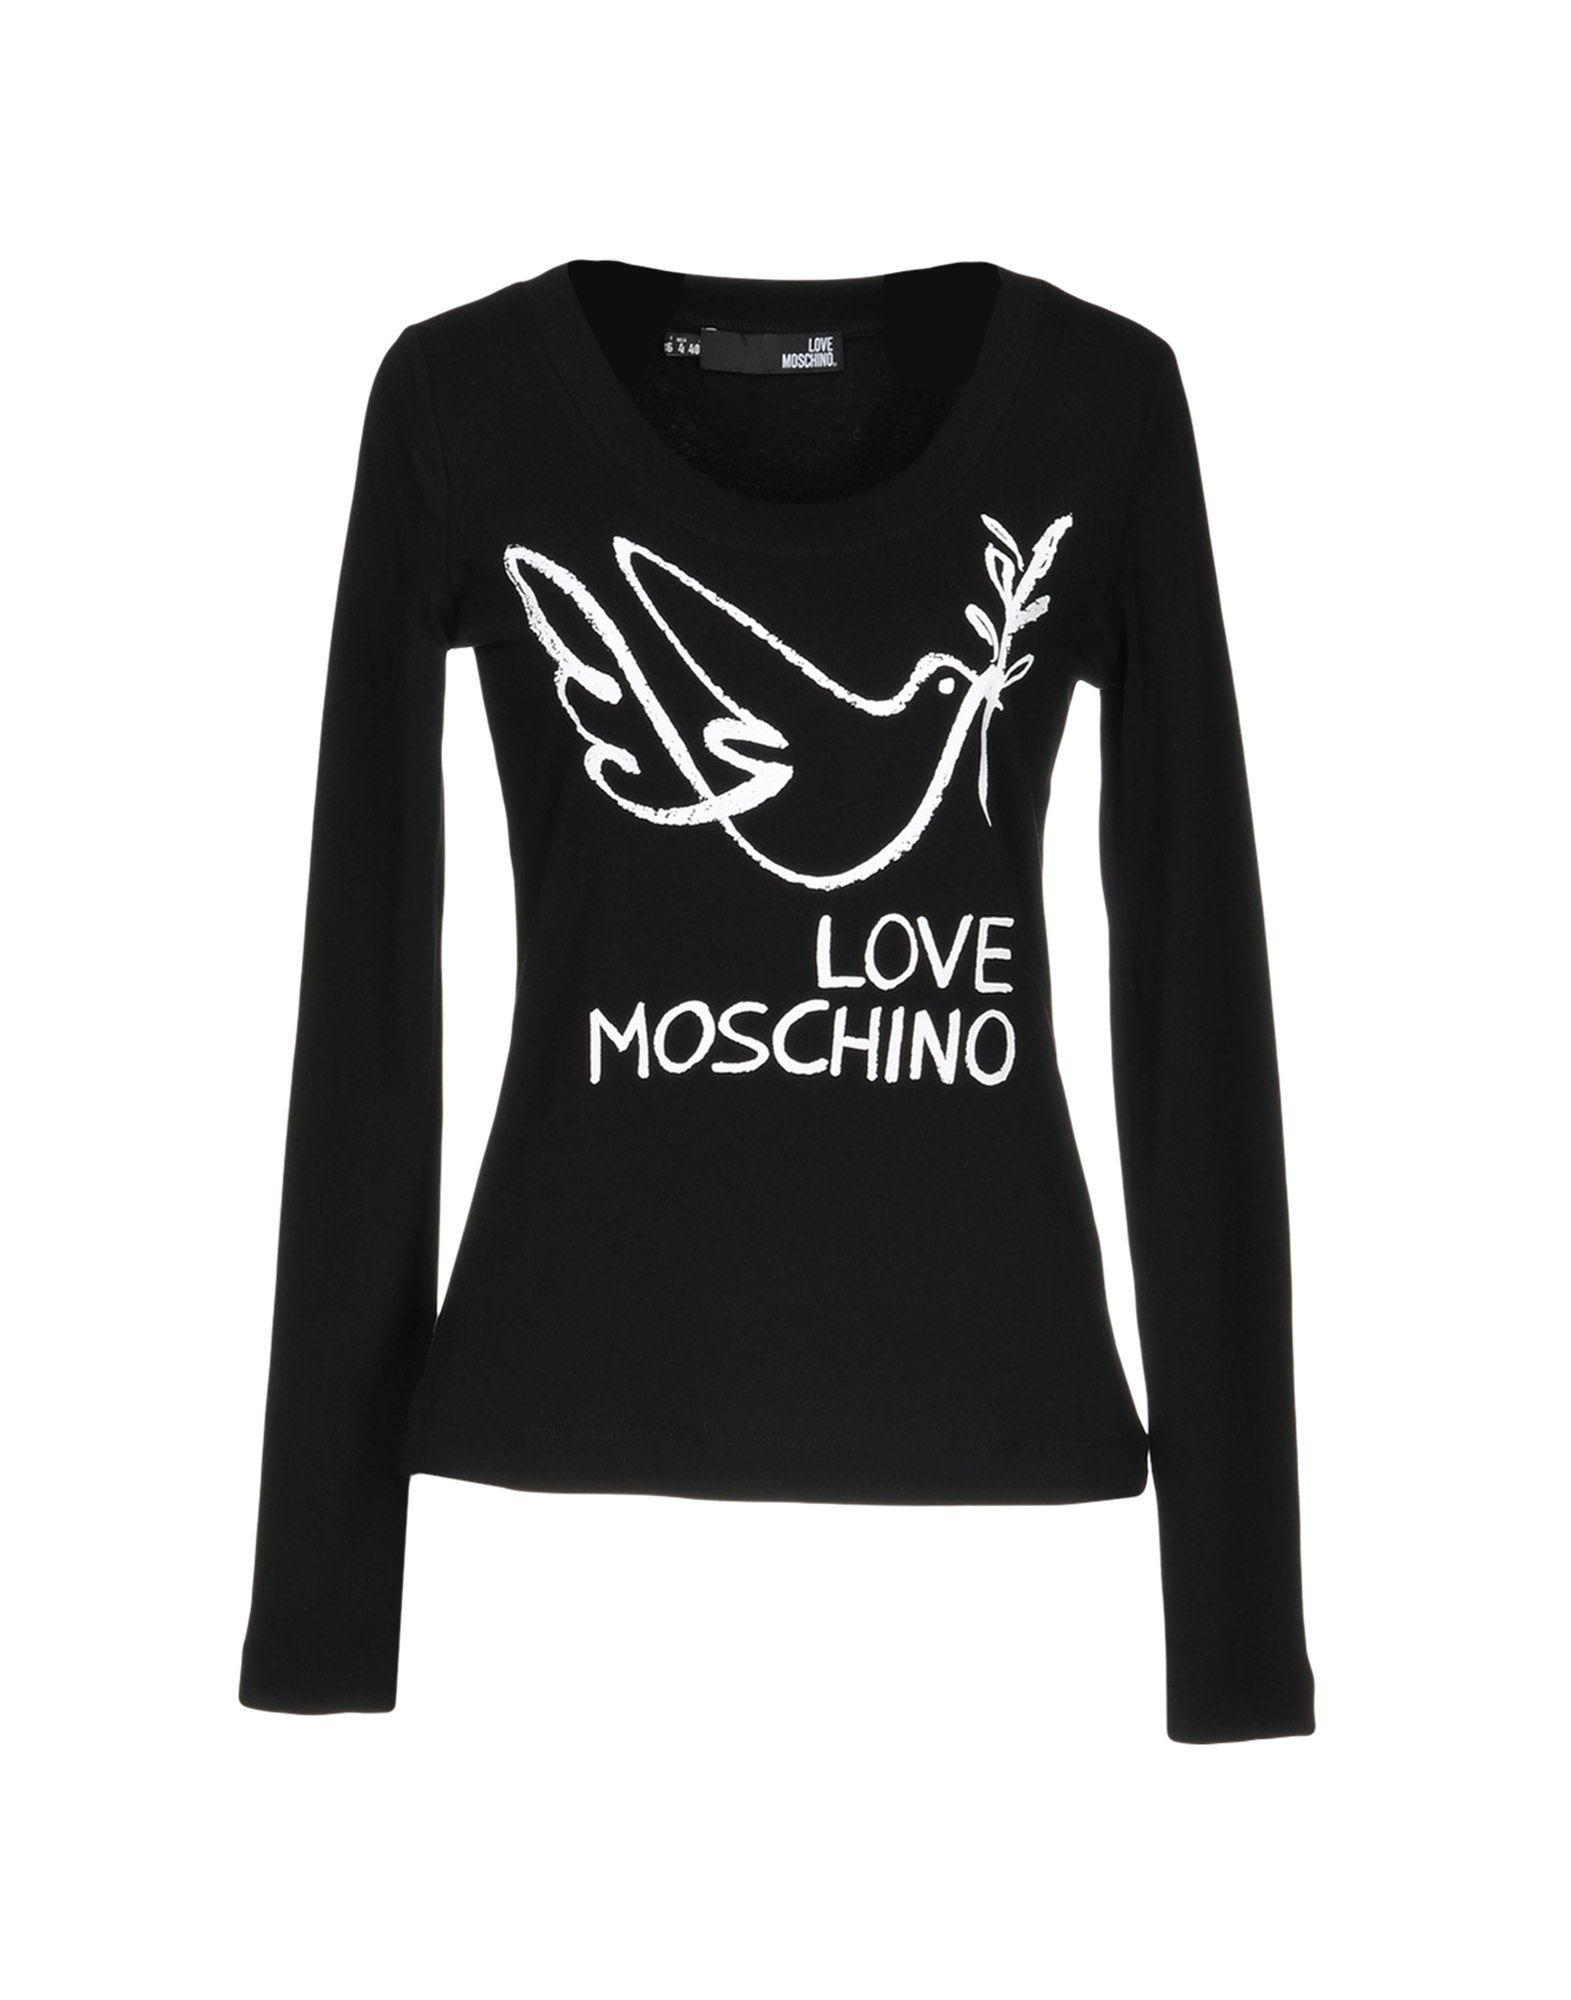 love moschino t shirts in black modesens. Black Bedroom Furniture Sets. Home Design Ideas